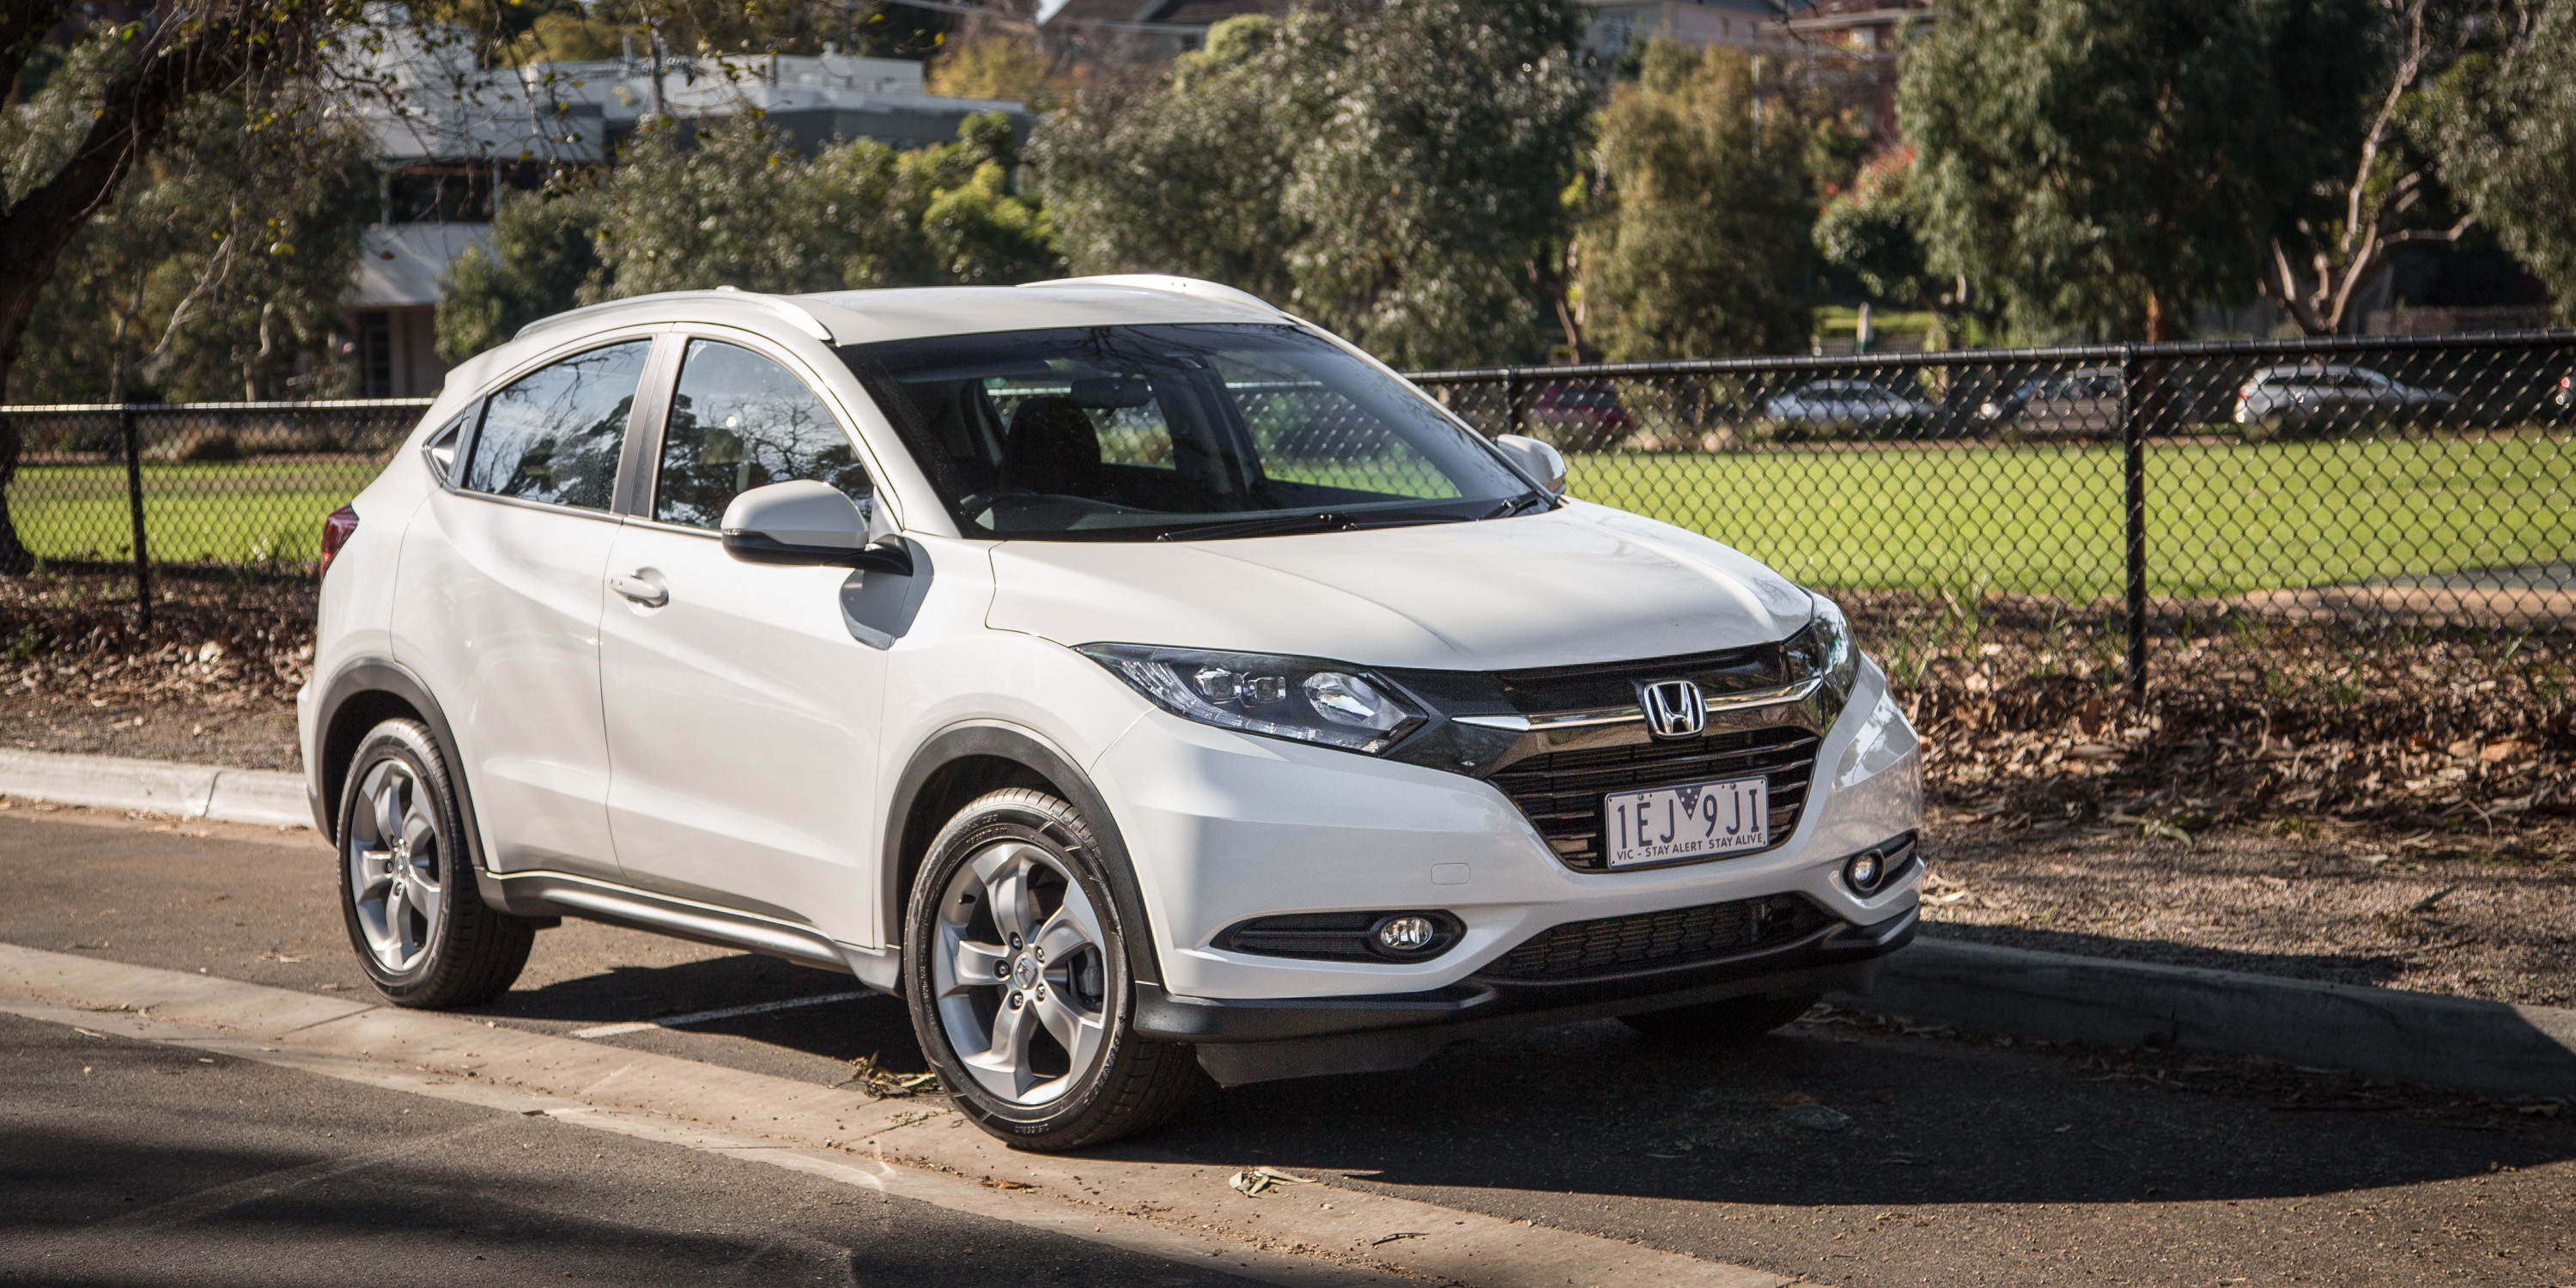 Honda Civic Hrv 2016 >> 2016 Honda HR-V VTi-S Review | CarAdvice